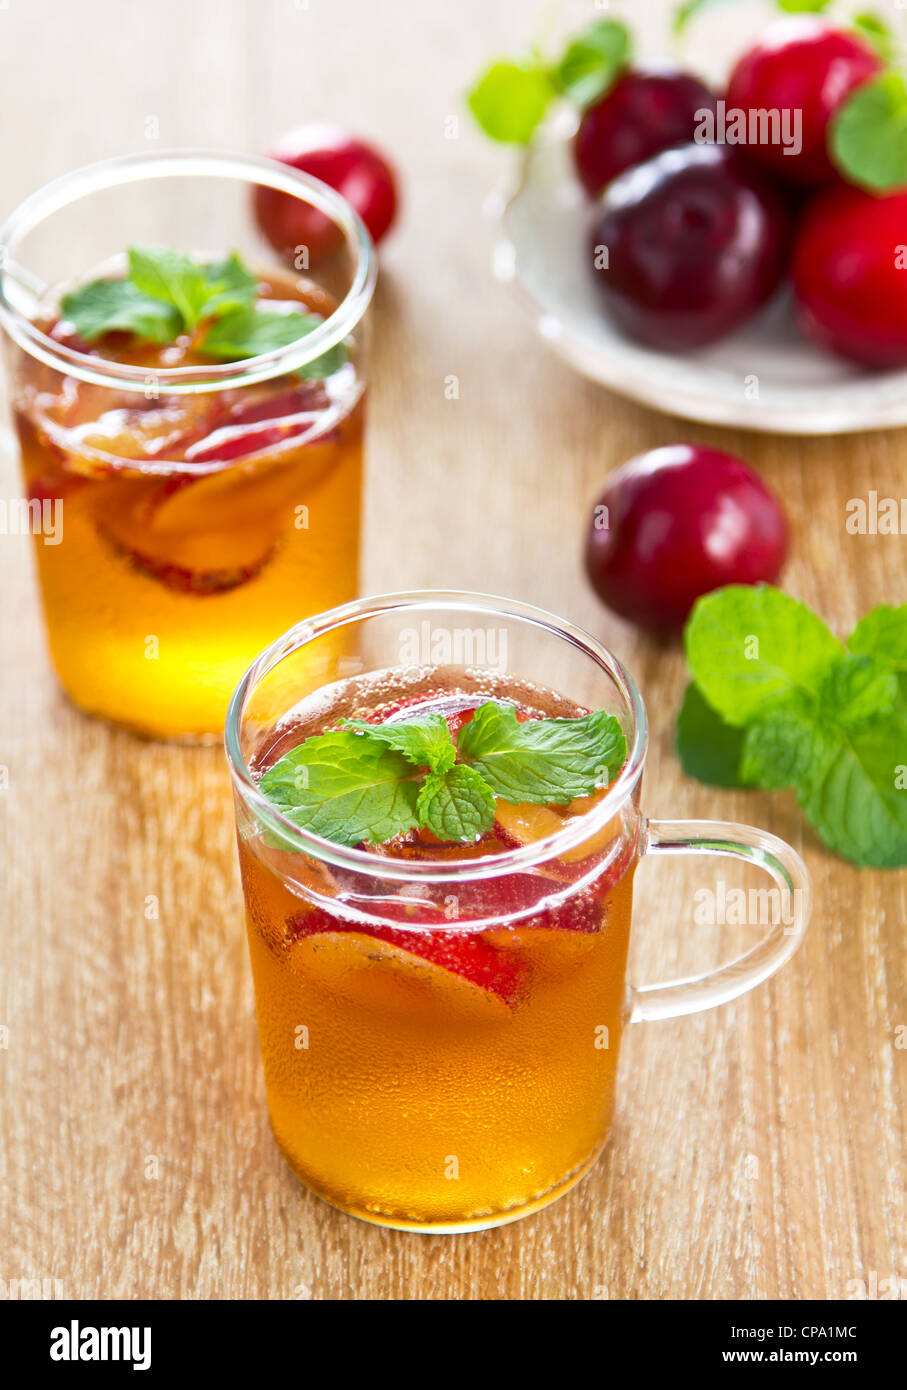 Plum juice with fresh plum and mint - Stock Image